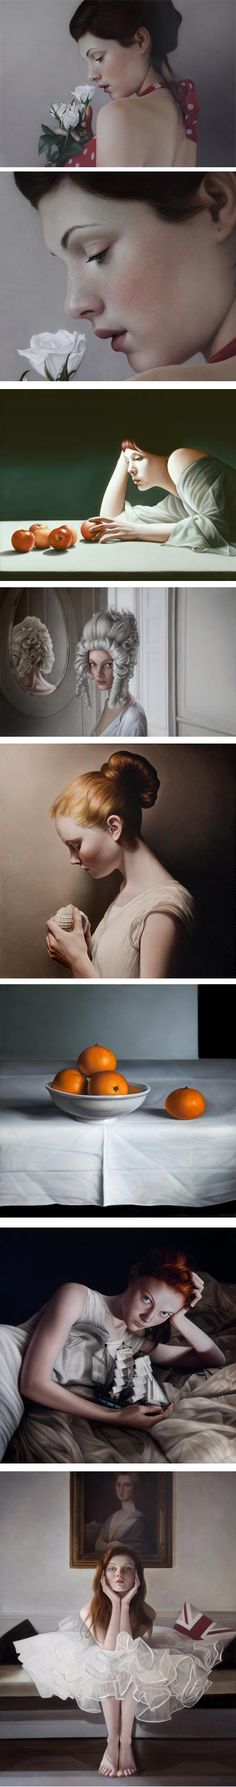 Mary Jane Ansell: Her portraits and other figurative paintings are elegant and highly refined, both in their paint handling and in her use of light to reveal form and texture. They can also feel intimate and, when she has her models engage the viewer directly, as she often does, they can be subtly piercing.